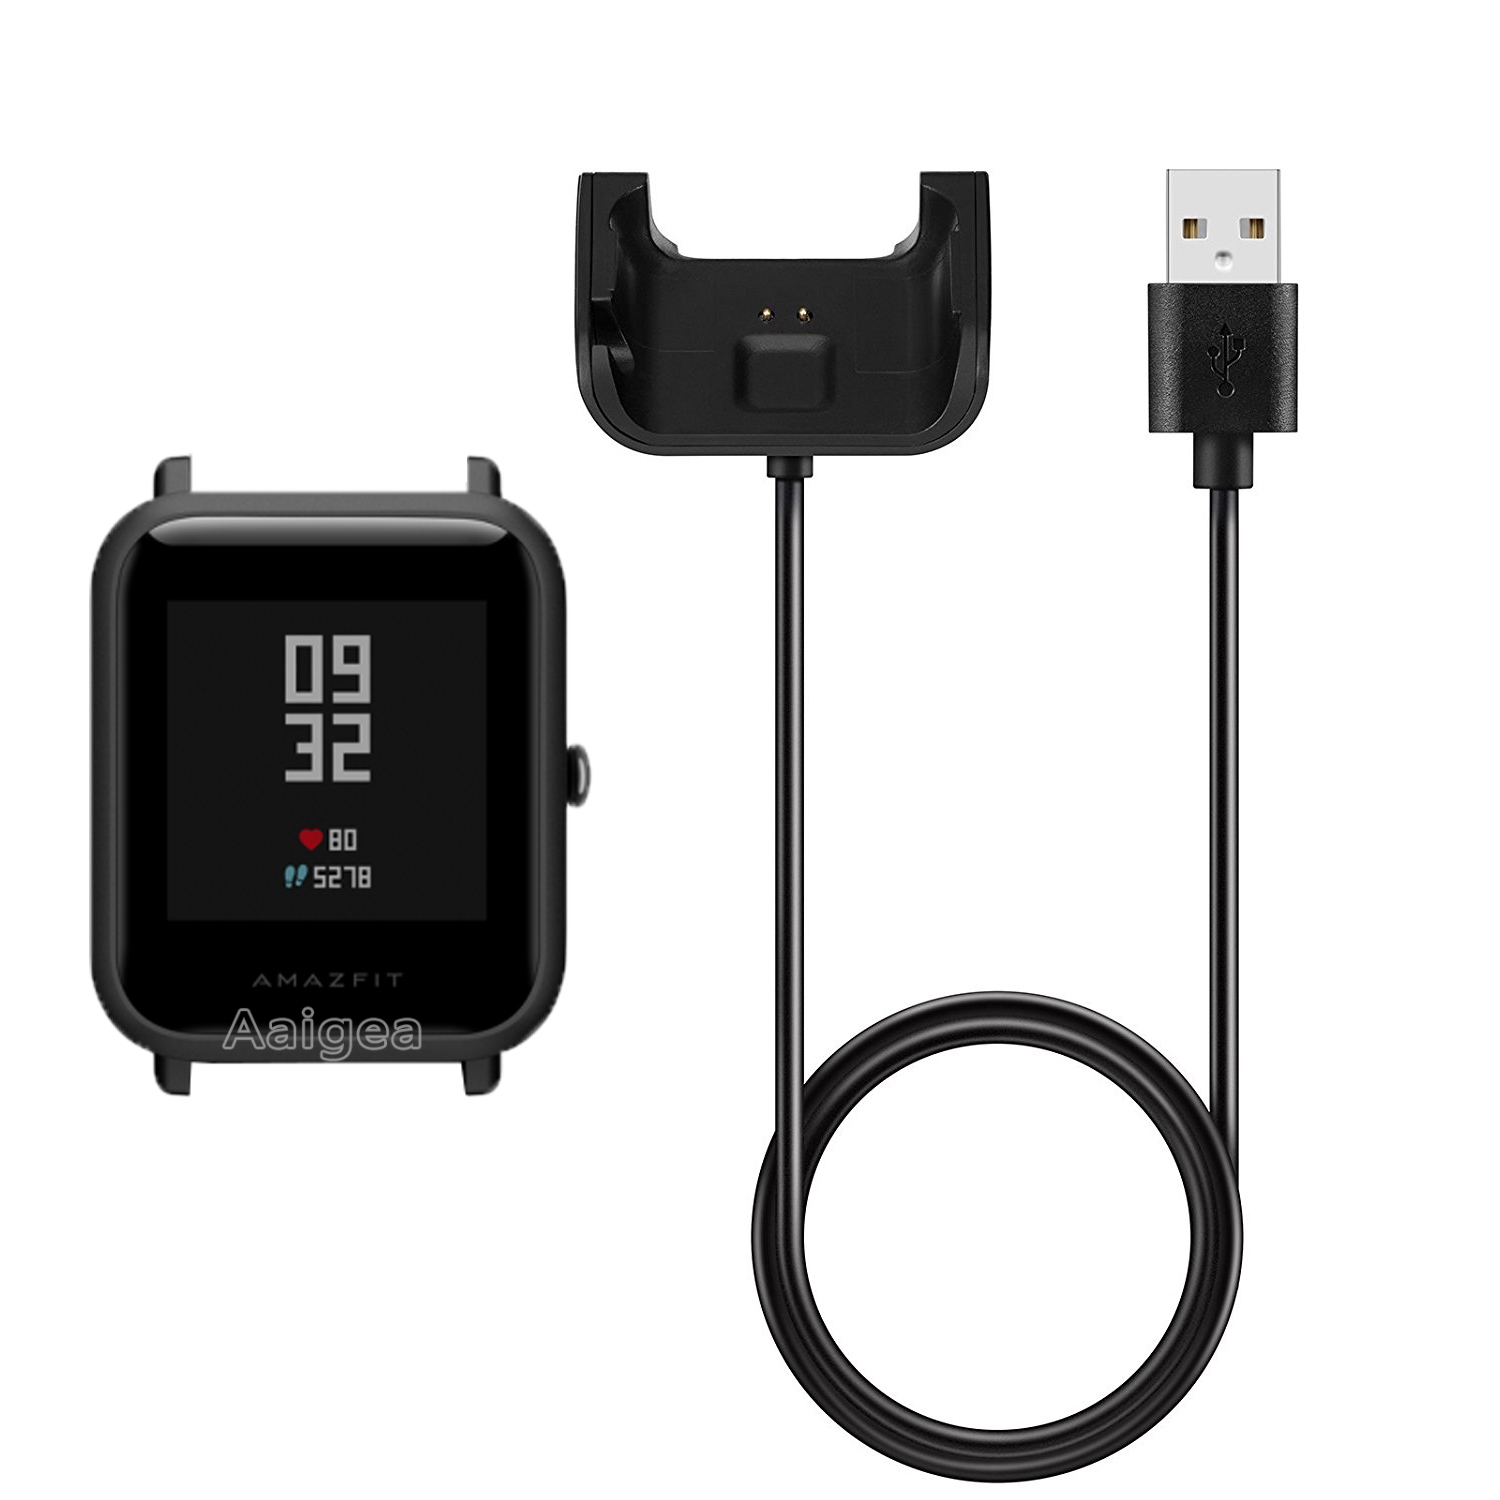 USB Charging Cable Dock for Xiaomi Huami Bip Bit Pace Youth Watch Charger 1M Portable Charger Data Cable Charging Dock Cradle peter levesque j the shipping point the rise of china and the future of retail supply chain management isbn 9780470826256